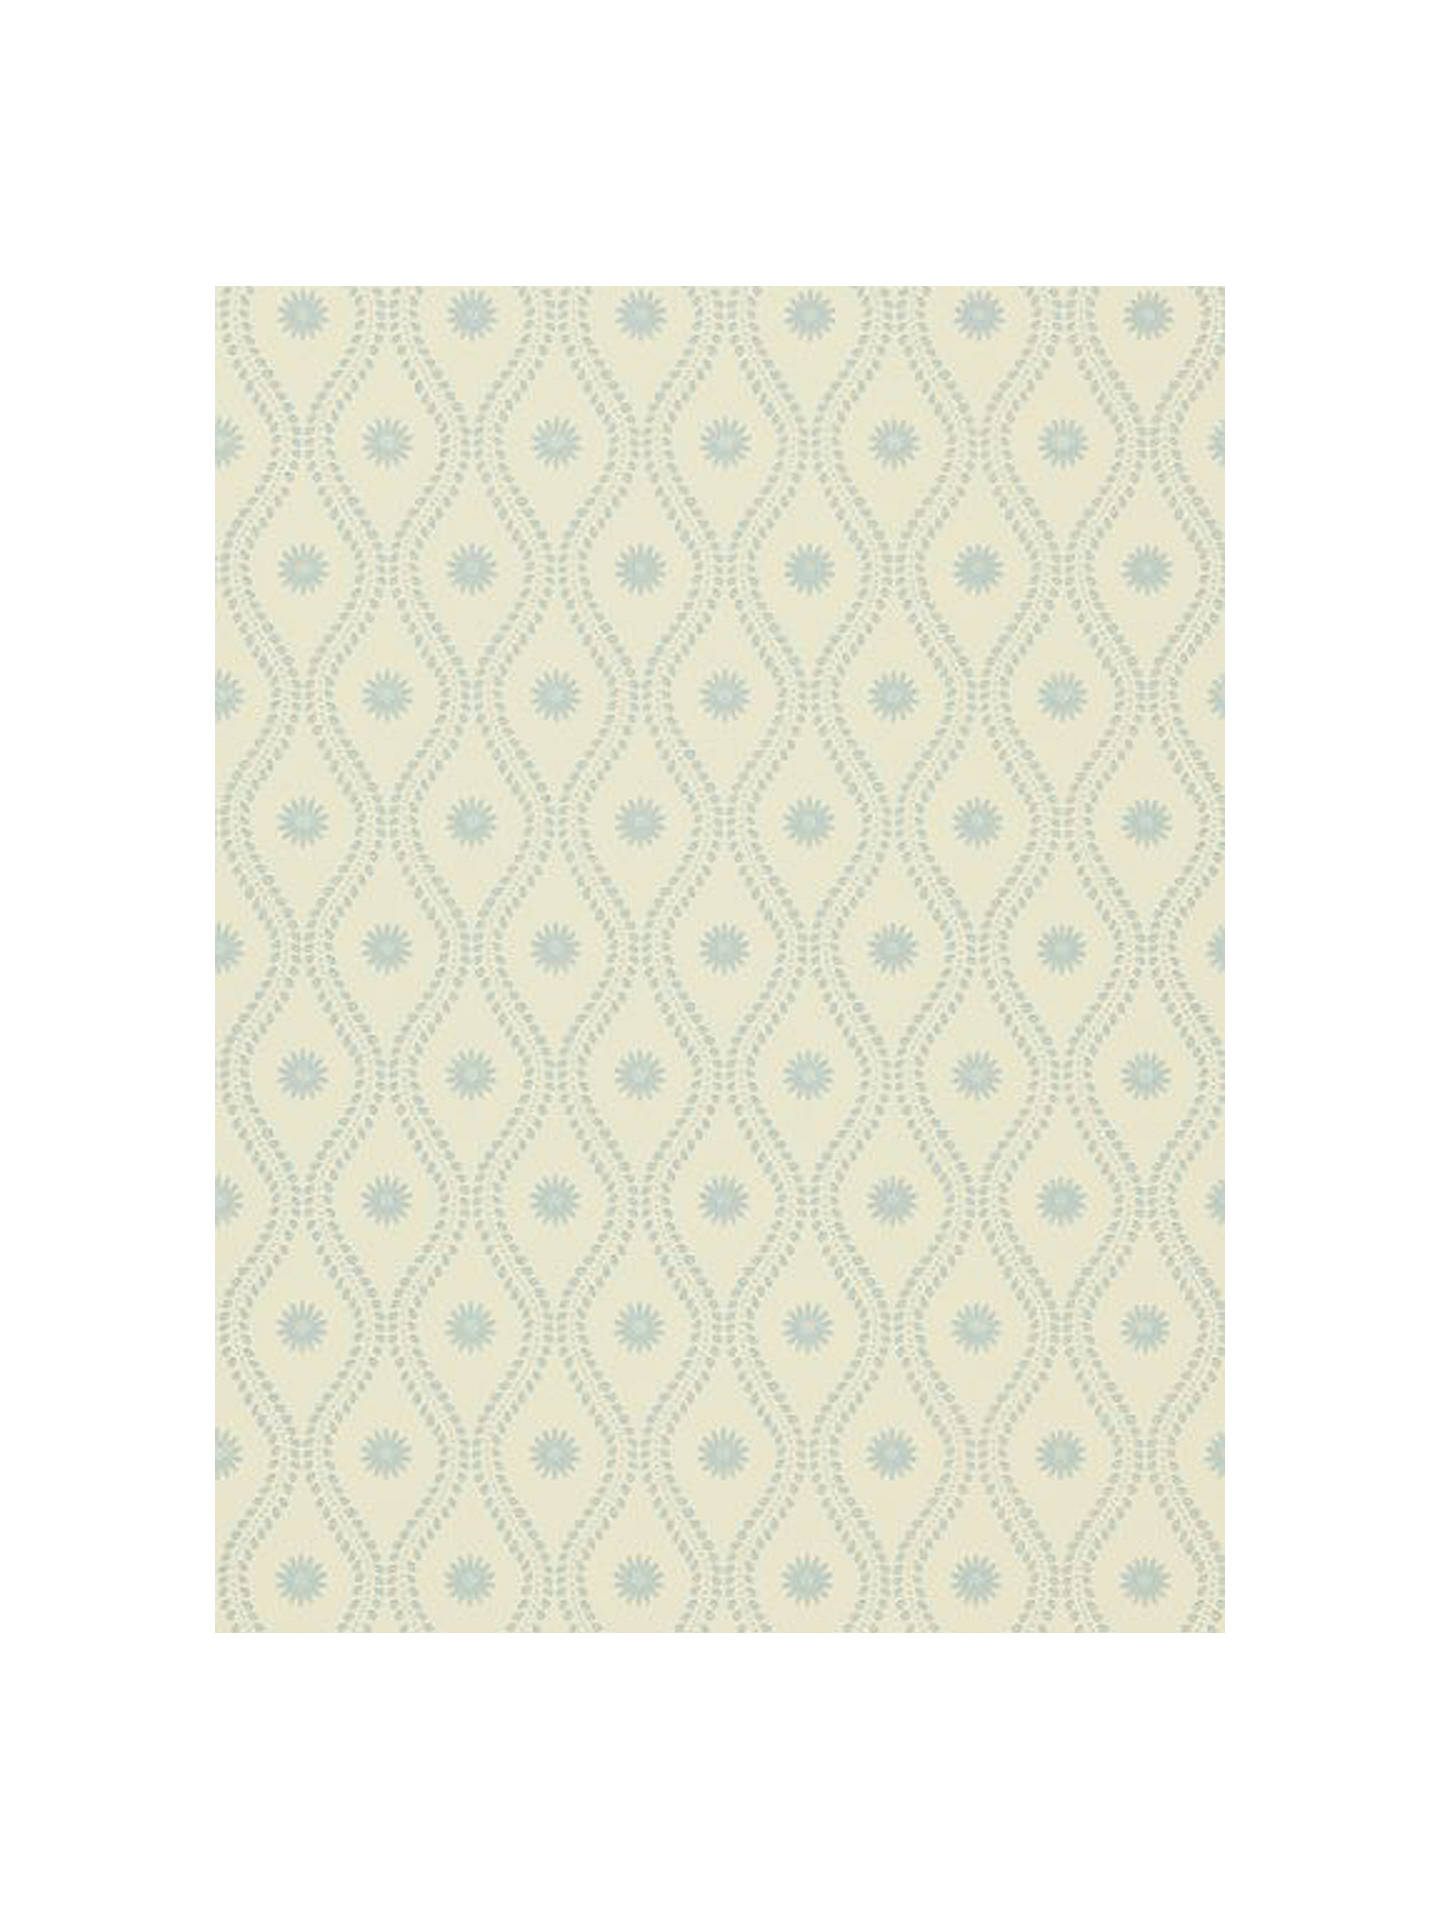 Buy Sanderson Marney Wallpaper, Cream/Blue, DMAWMA101 Online at johnlewis.com